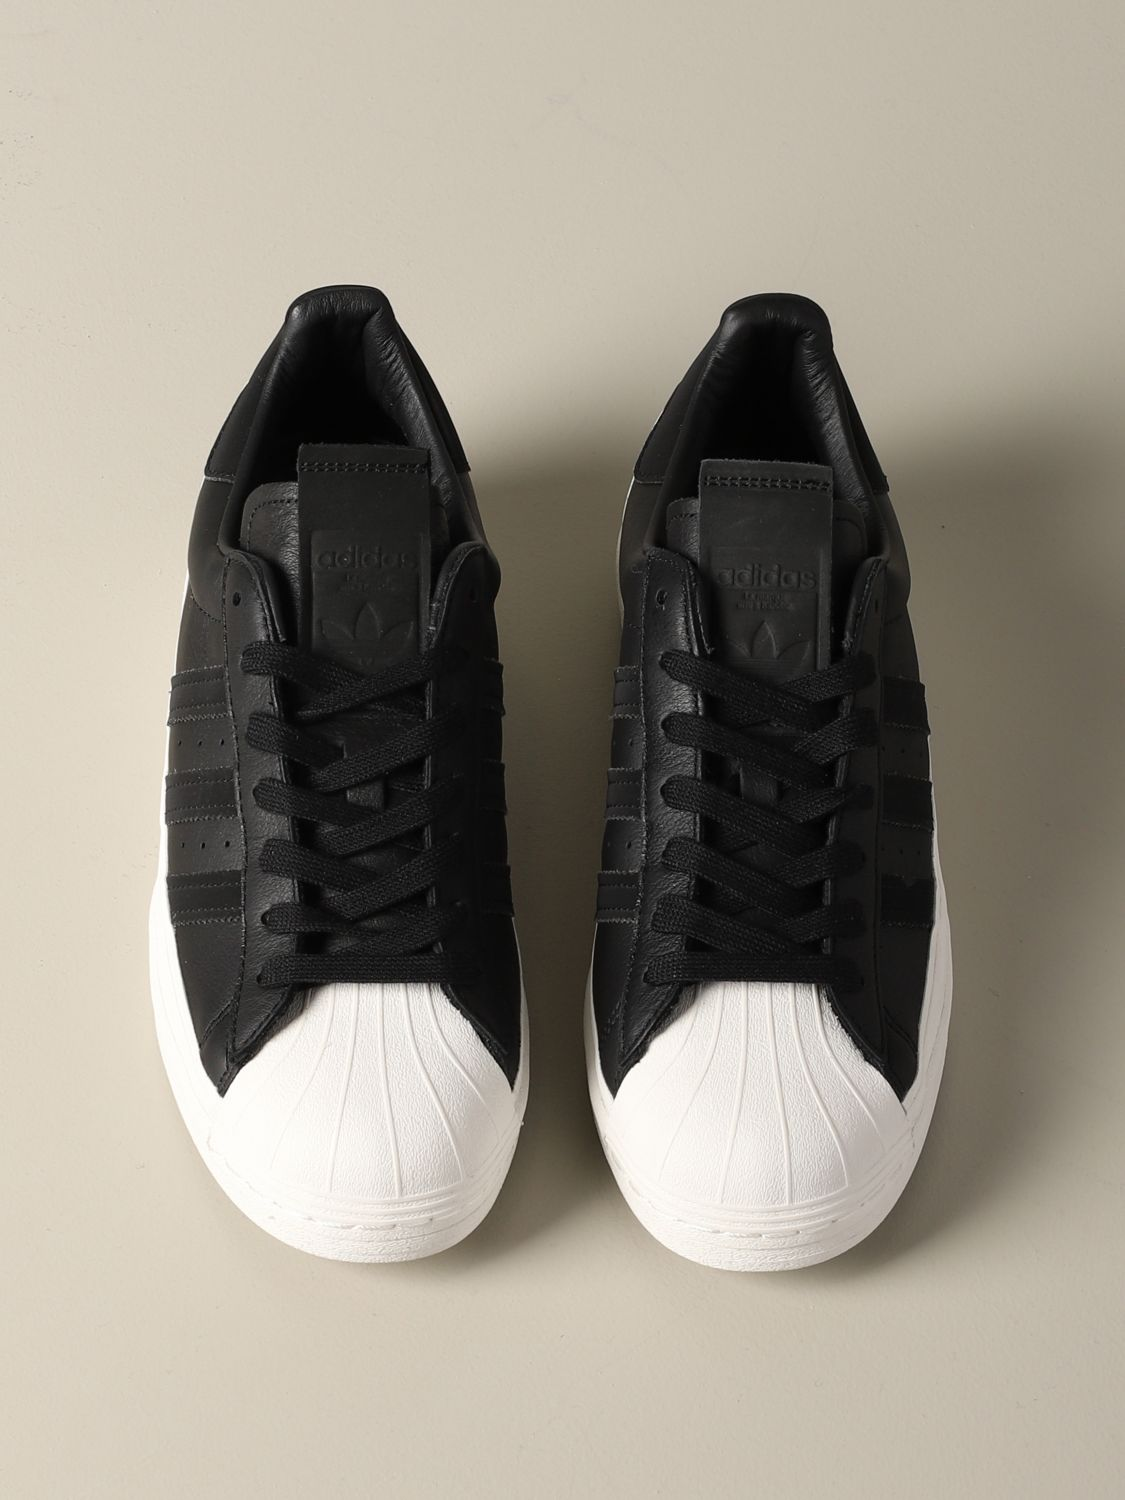 运动鞋 Adidas Originals: Adidas Originals Superstar logo 真皮运动鞋 黑色 3